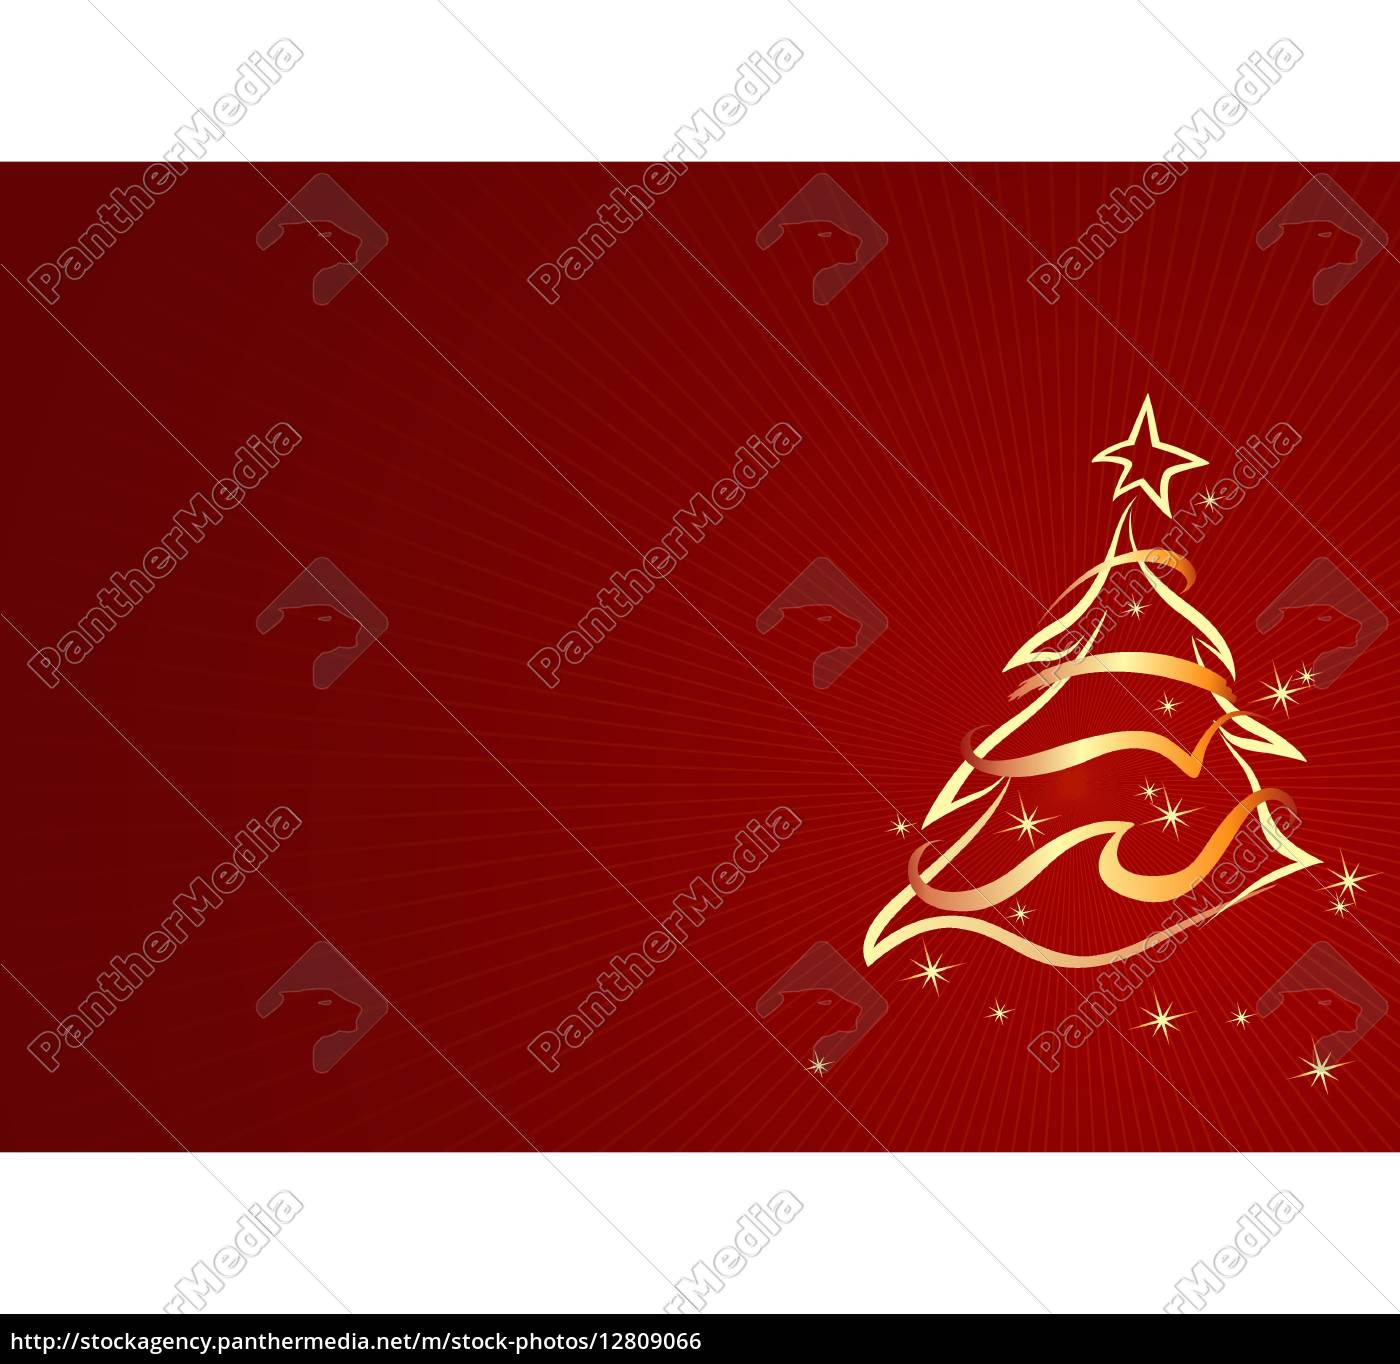 Royalty Free Vector 12809066 Gold Abstract Xmas Tree Christmas Background Illustration